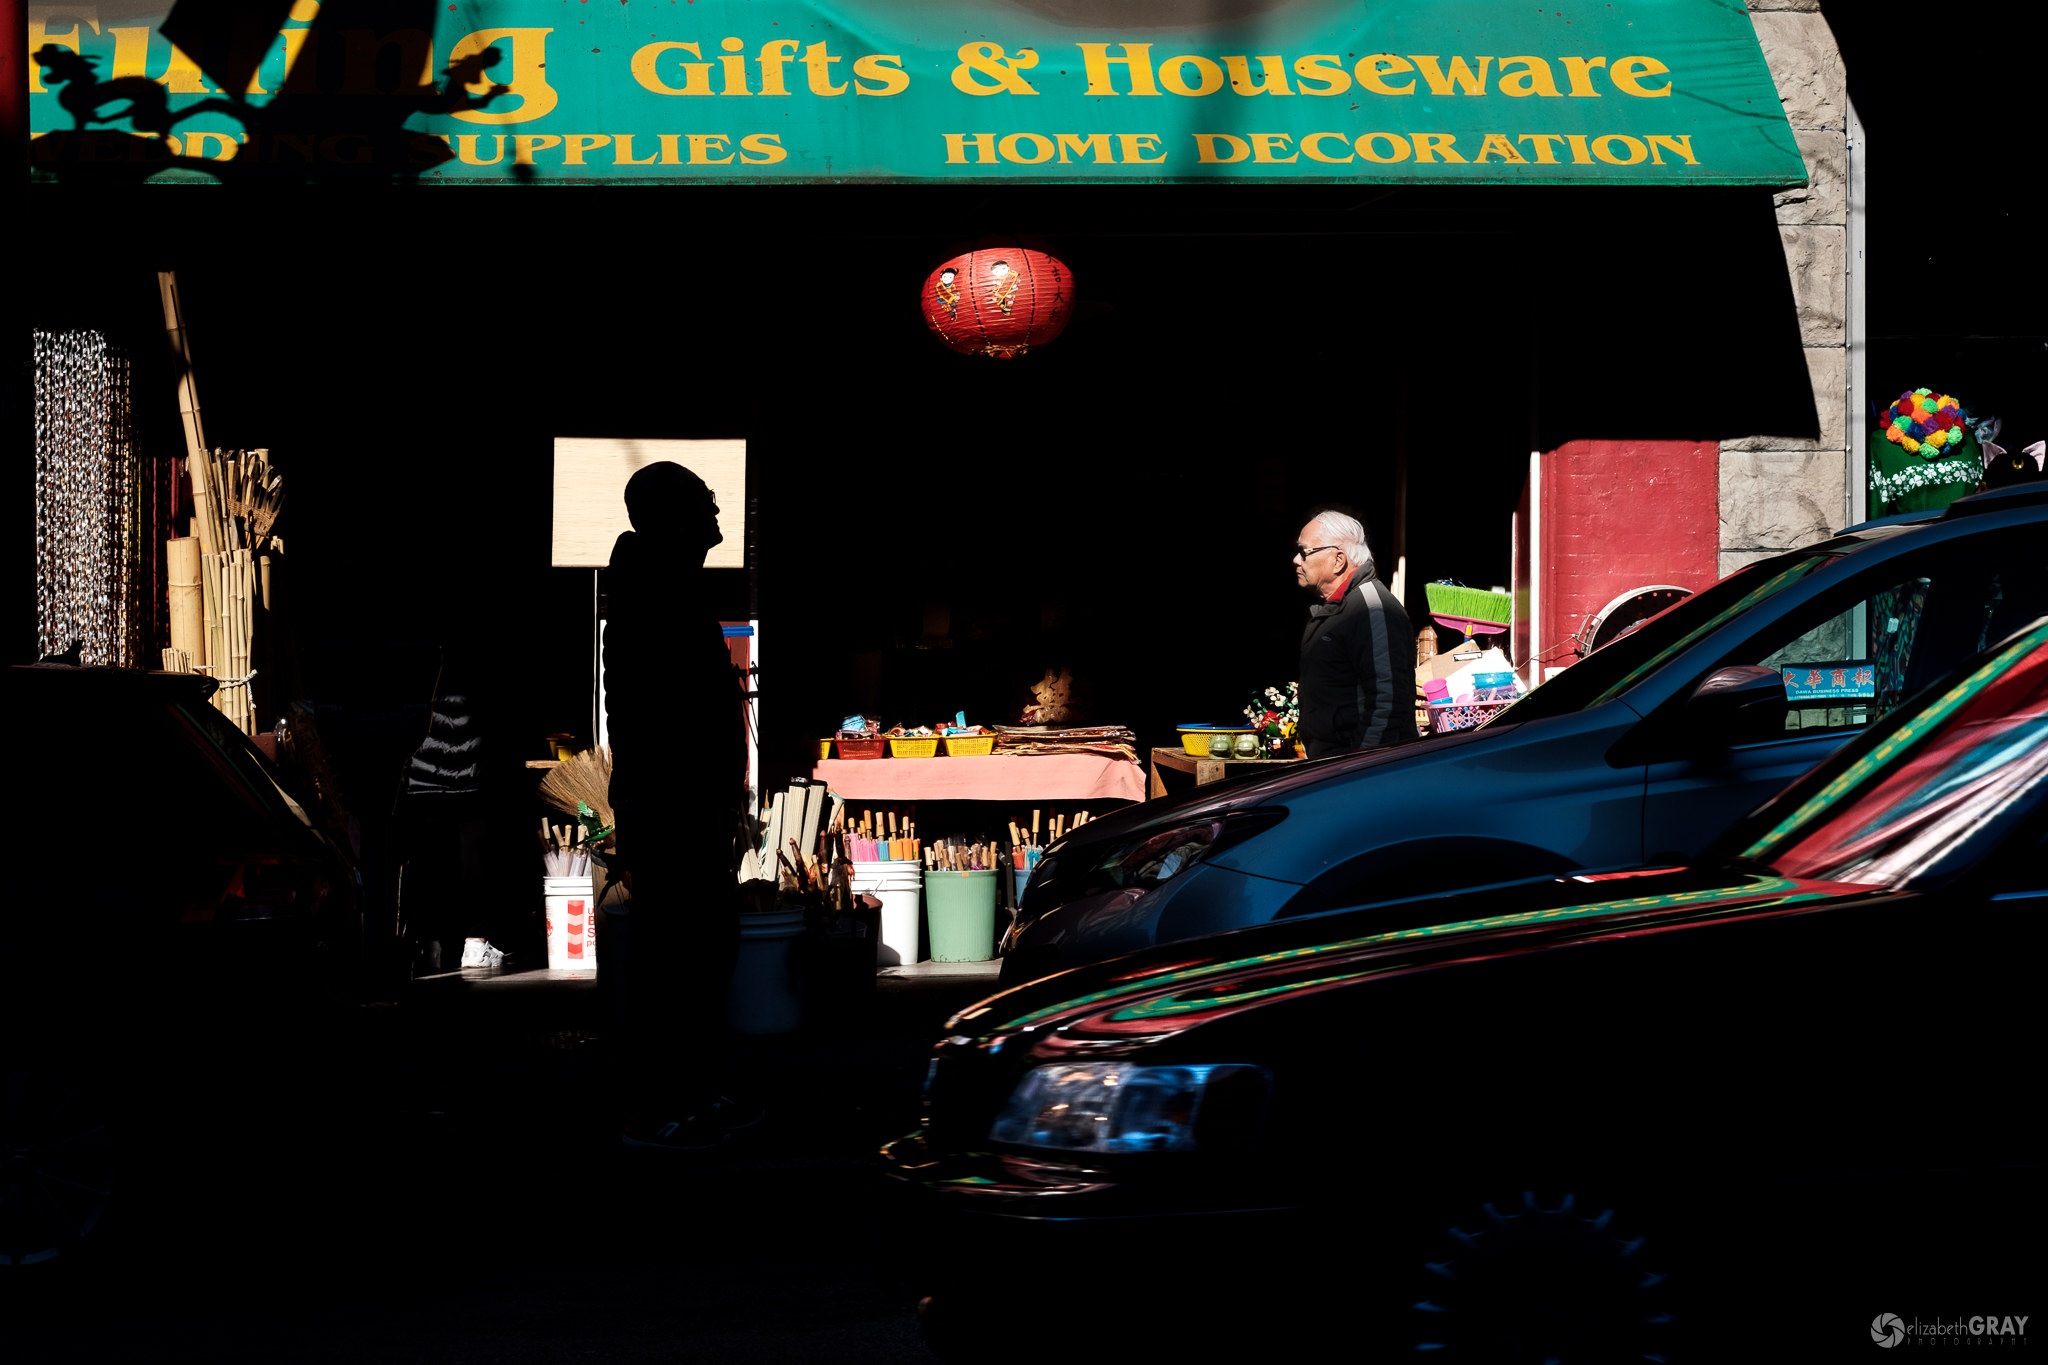 Gifts and Houseware - In my first attempts to capture this photo, the silhouetted figure was not centred within the bright sign. Luckily, he was waiting for someone and I could move slightly so that his entire head was silhouetted. I got lucky when a dark car drove past, adding reflections to the foreground.